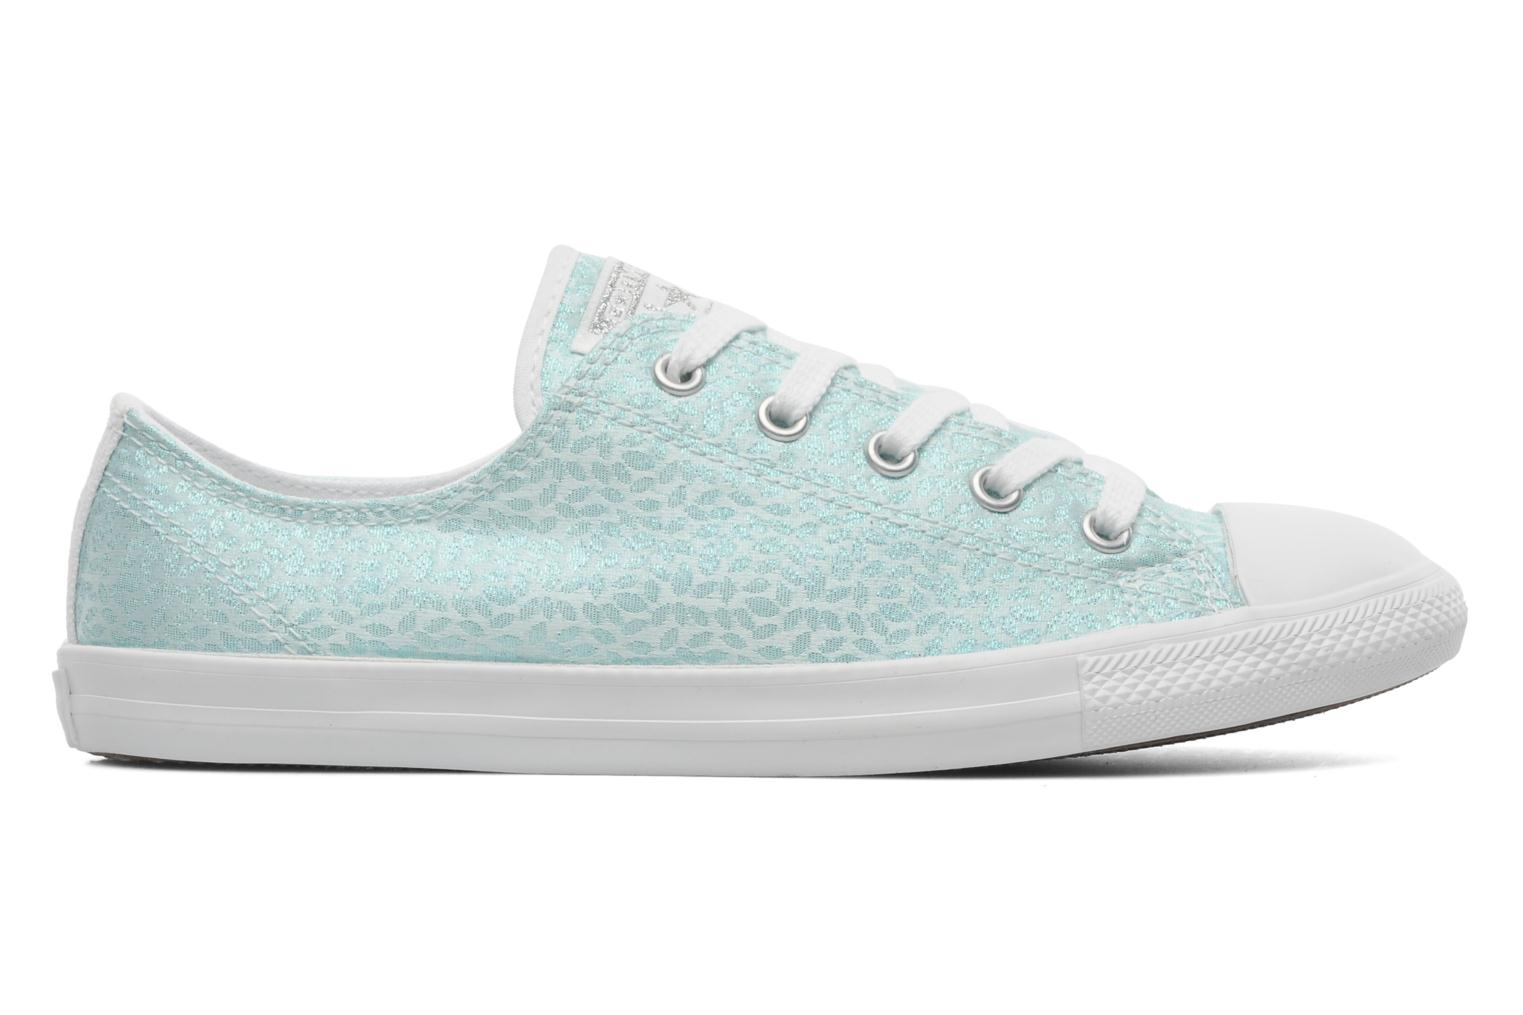 All Star Dainty Sparkle Ox W Ecume De Mer/Blc